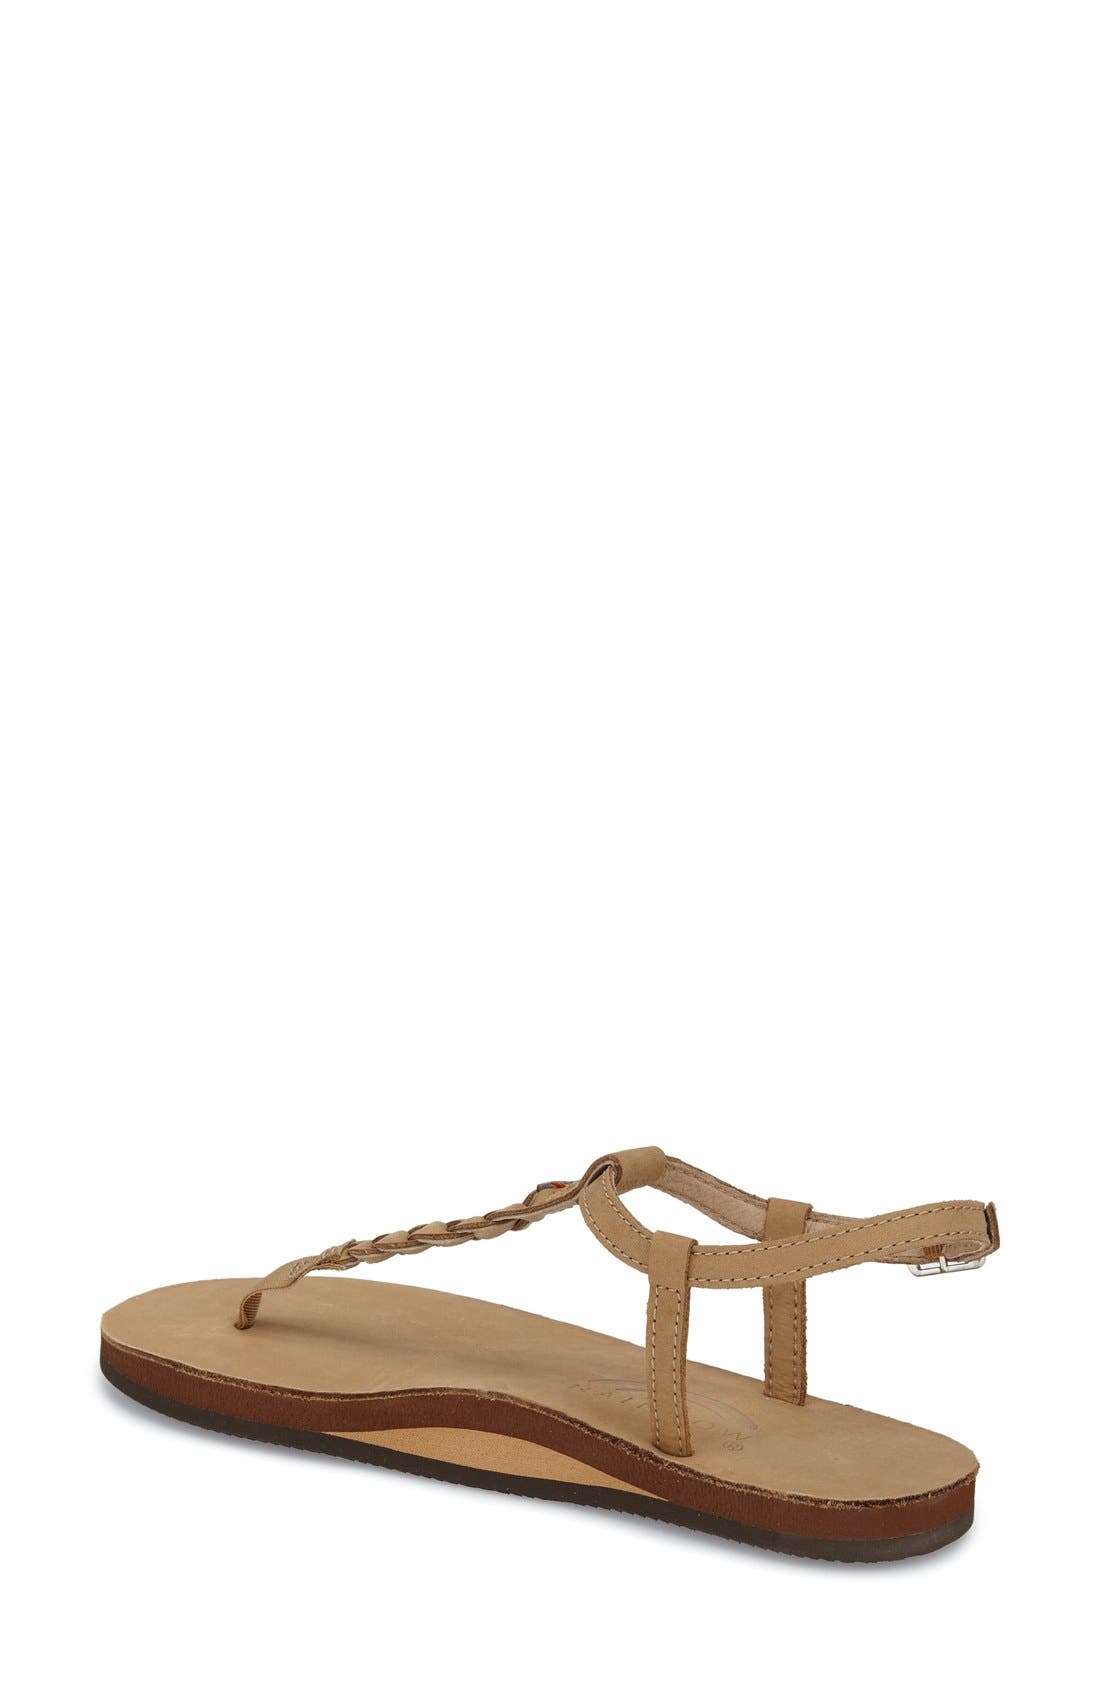 'T-Street' Braided T-Strap Sandal,                             Alternate thumbnail 8, color,